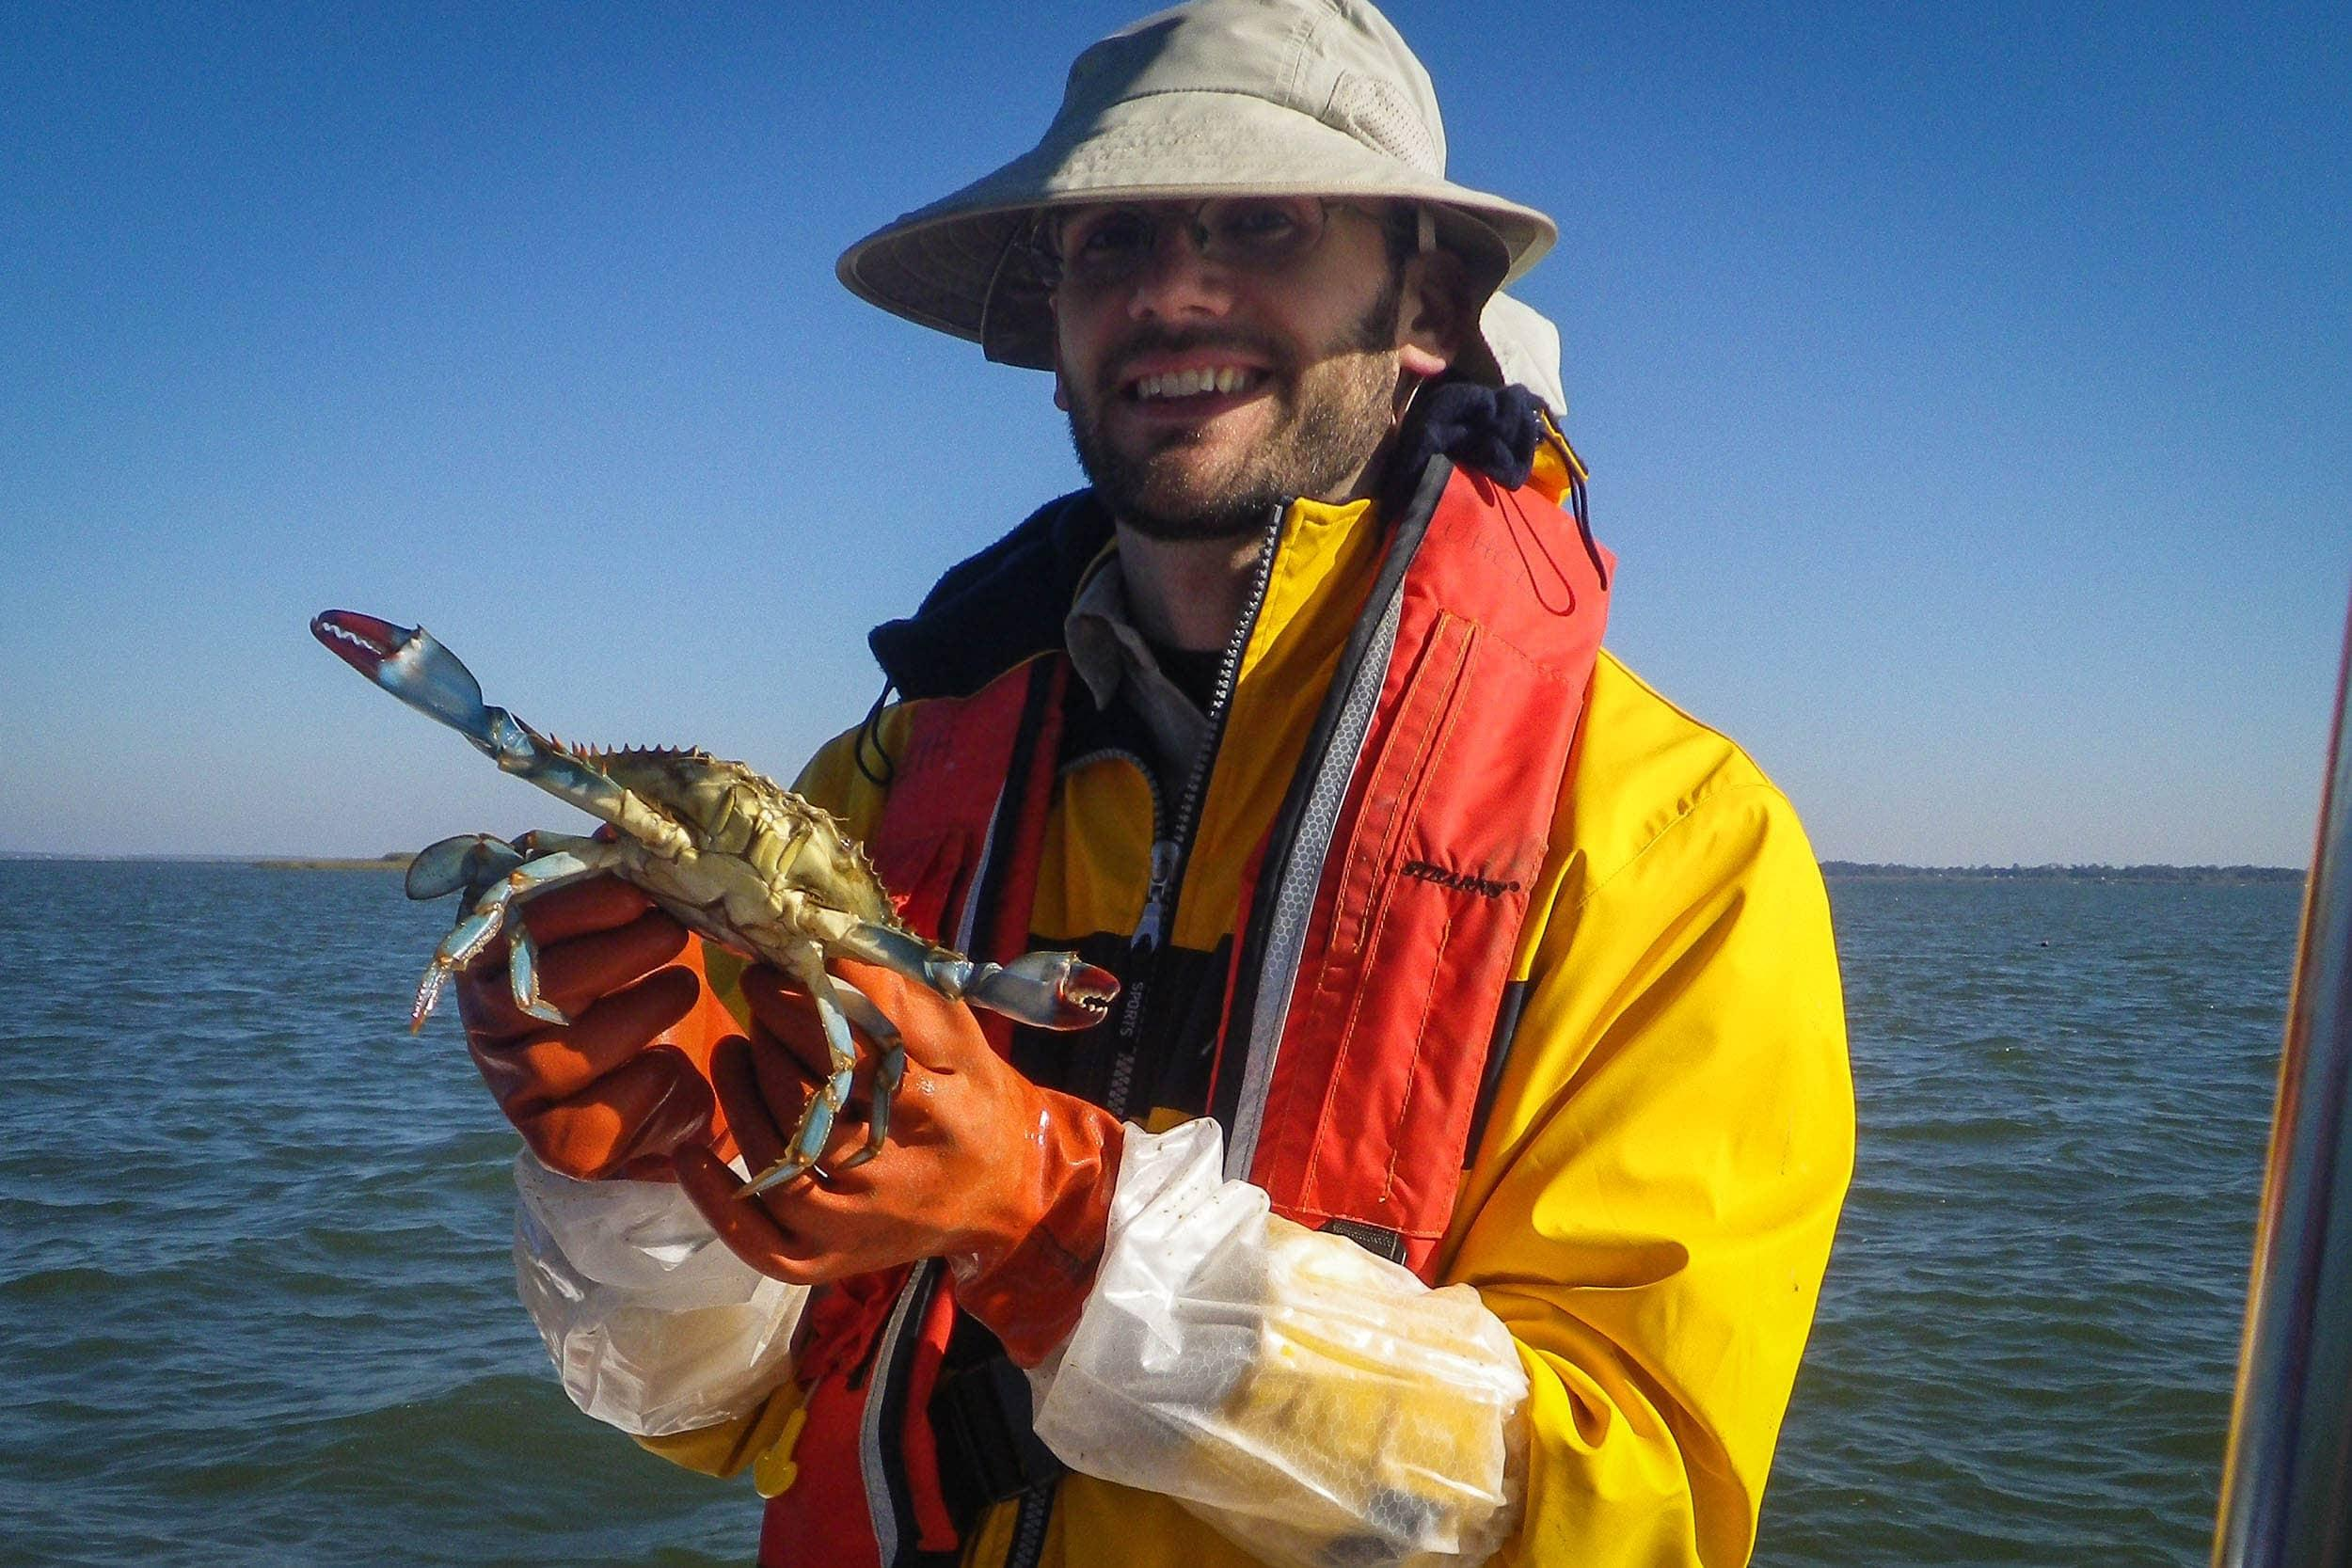 Richard Blackney, EIH research assistant, with a blue crab captured in deep water trap deployment